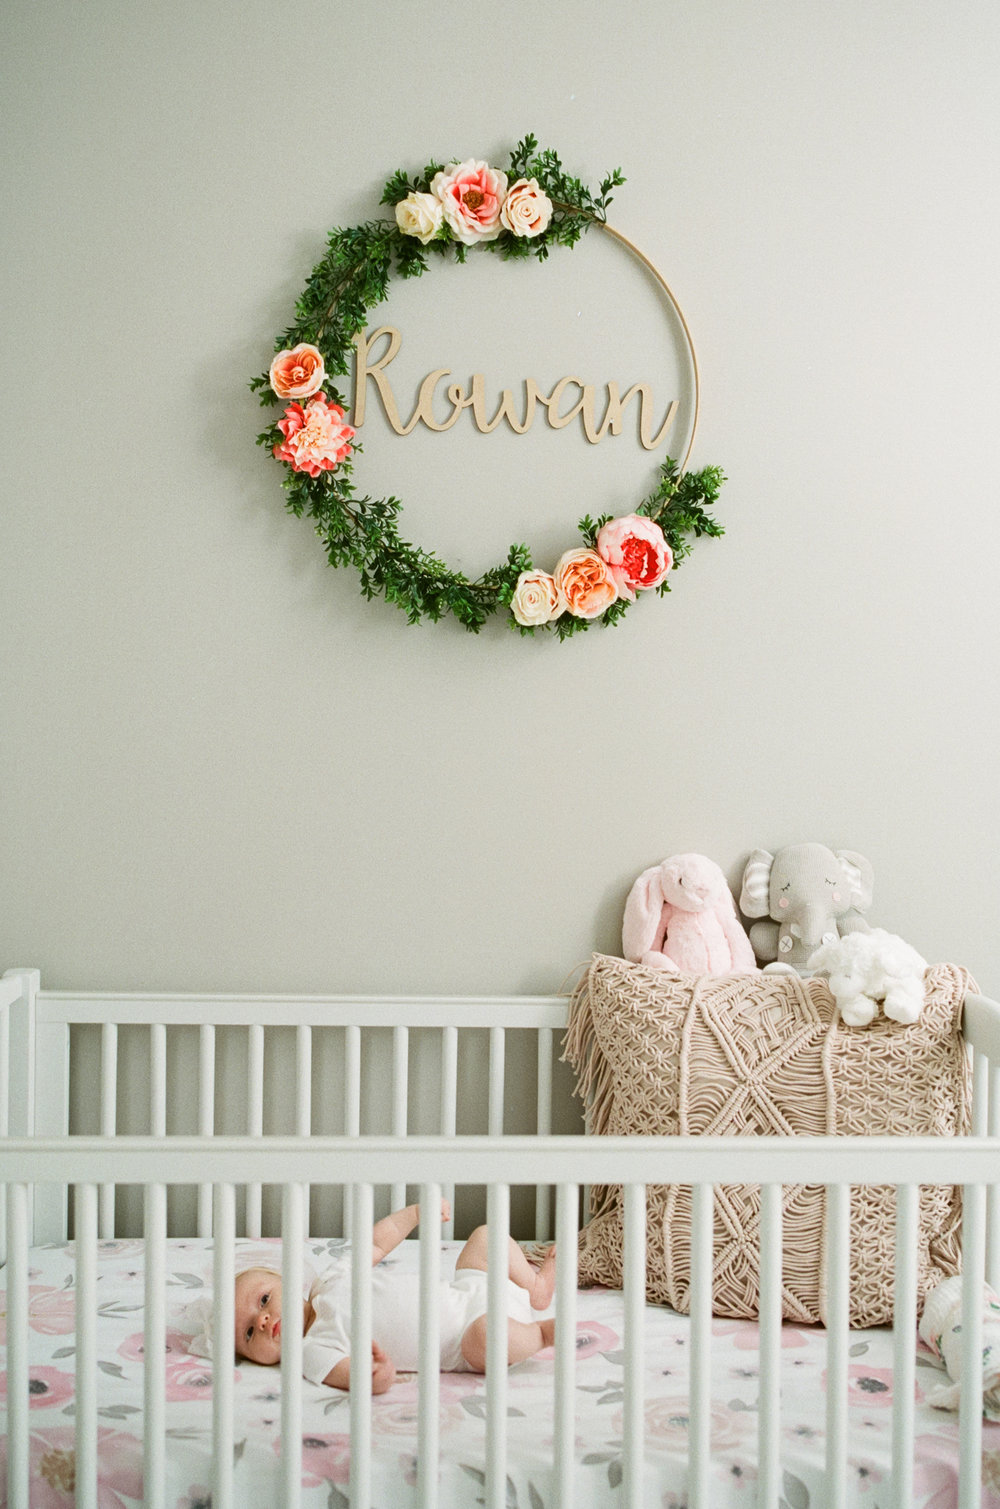 raleigh-lifestyle-newborn-photographer-six-weeks-old-nursery